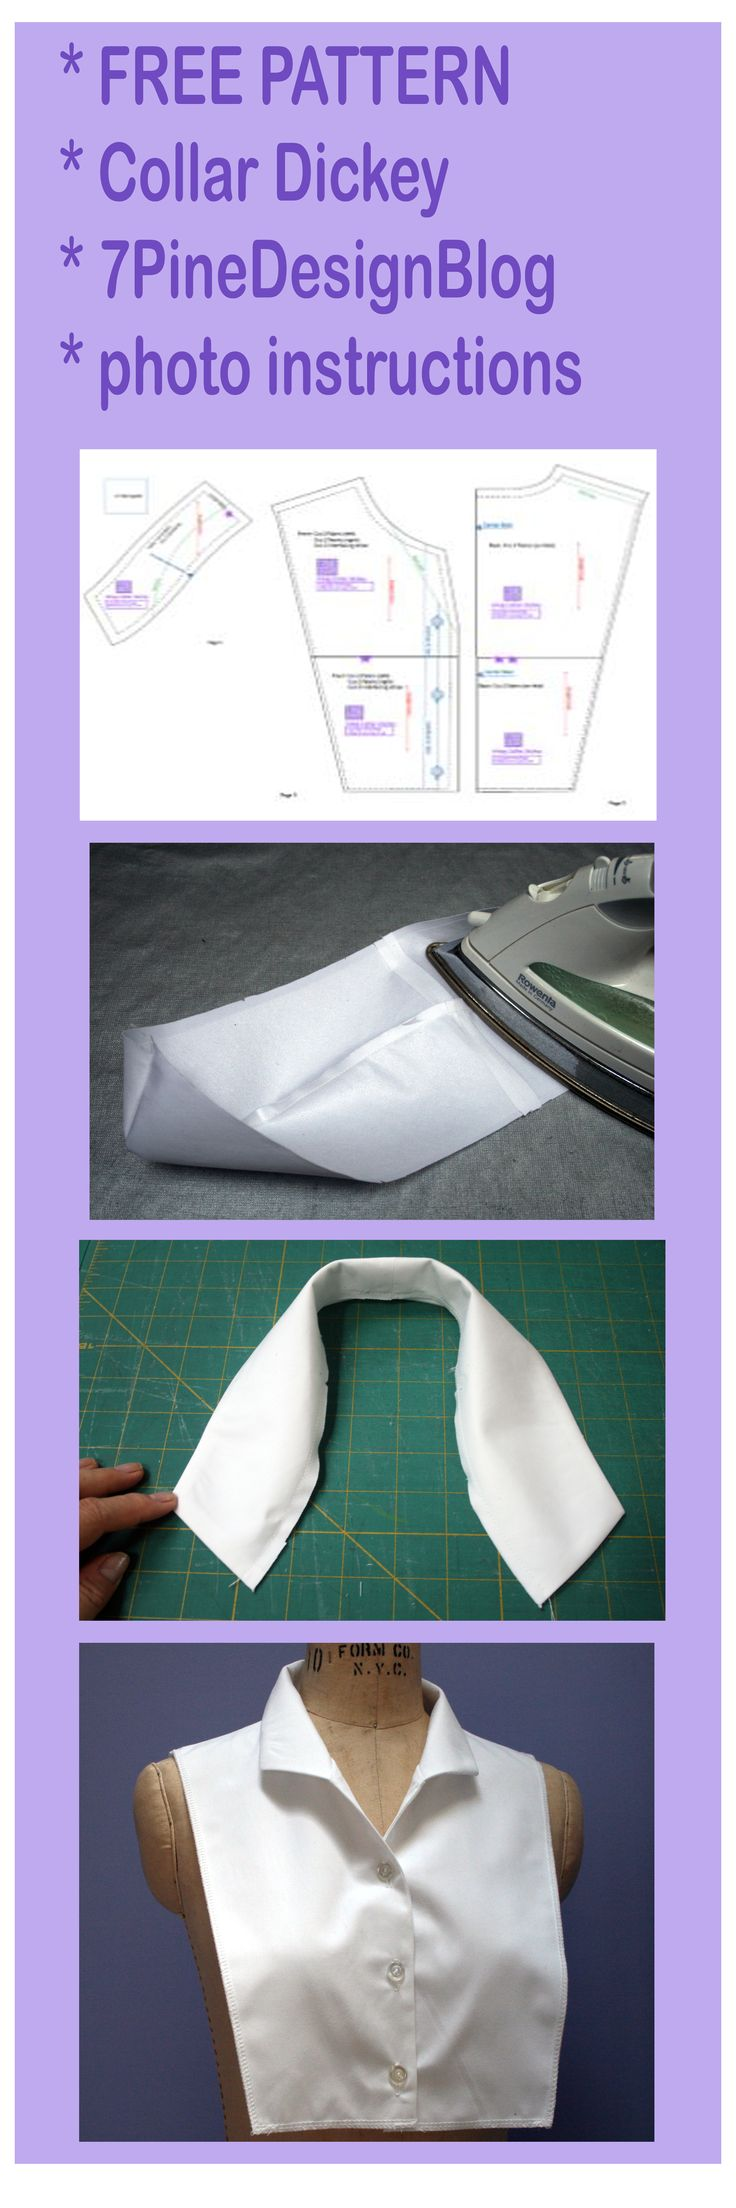 wing collar dickey pattern                                                                                                                                                                                 More